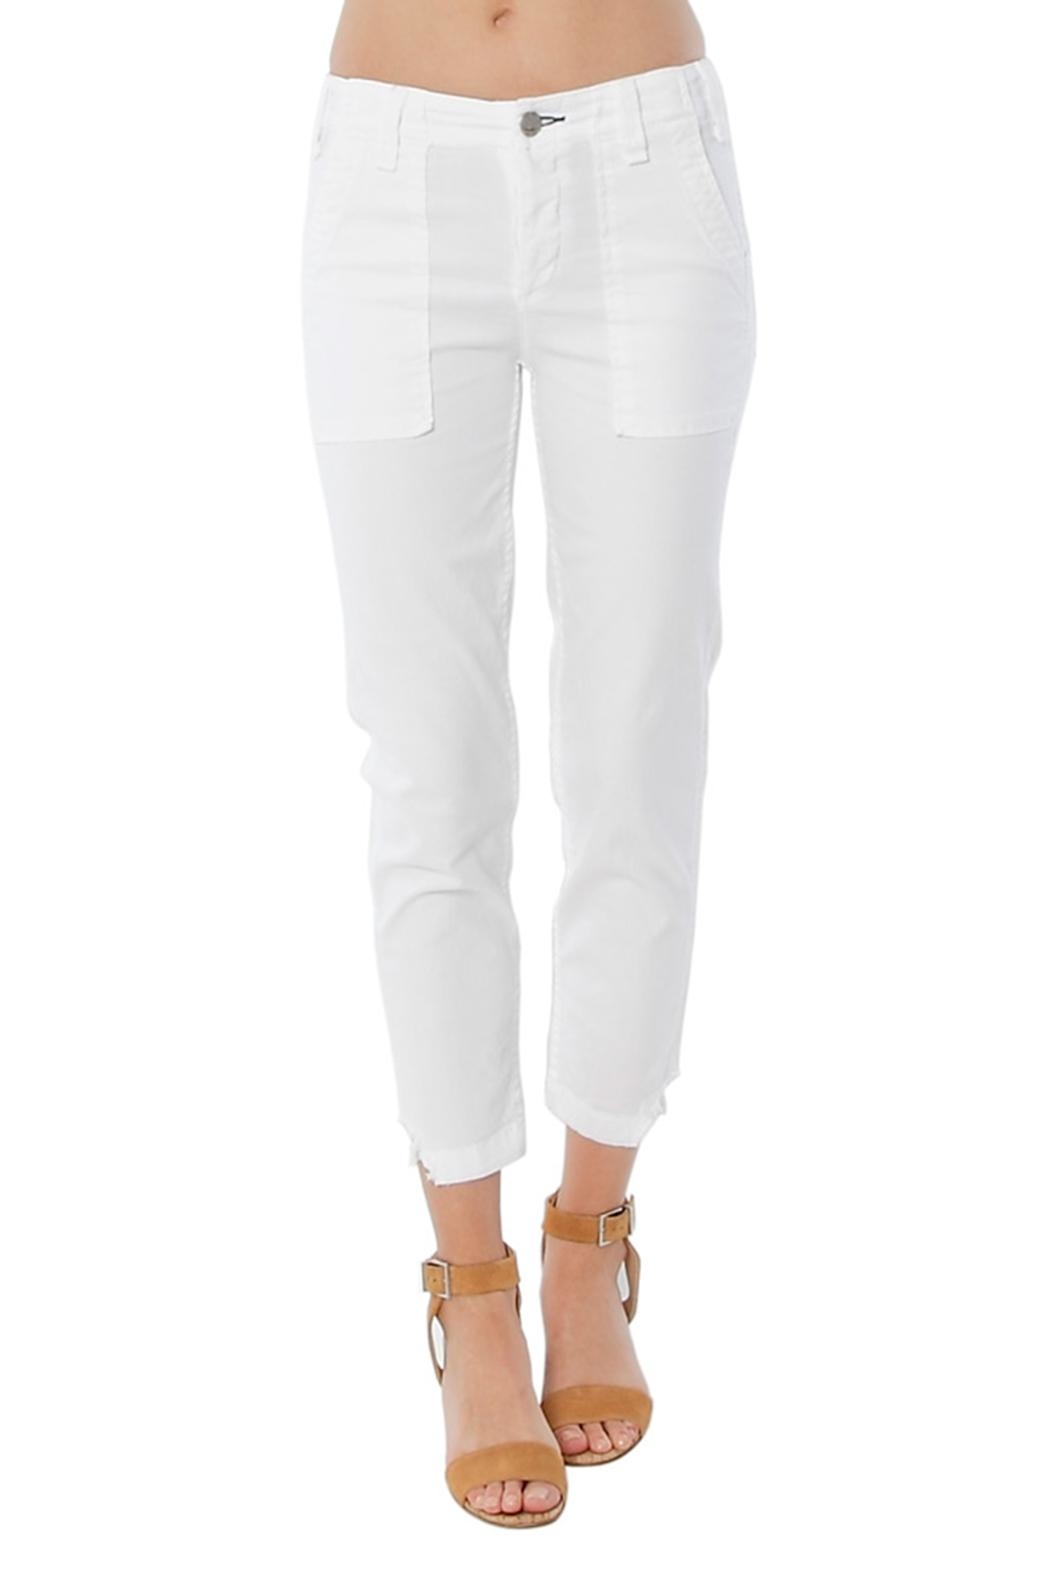 MCGUIRE DENIM White Utility Trouser - Main Image